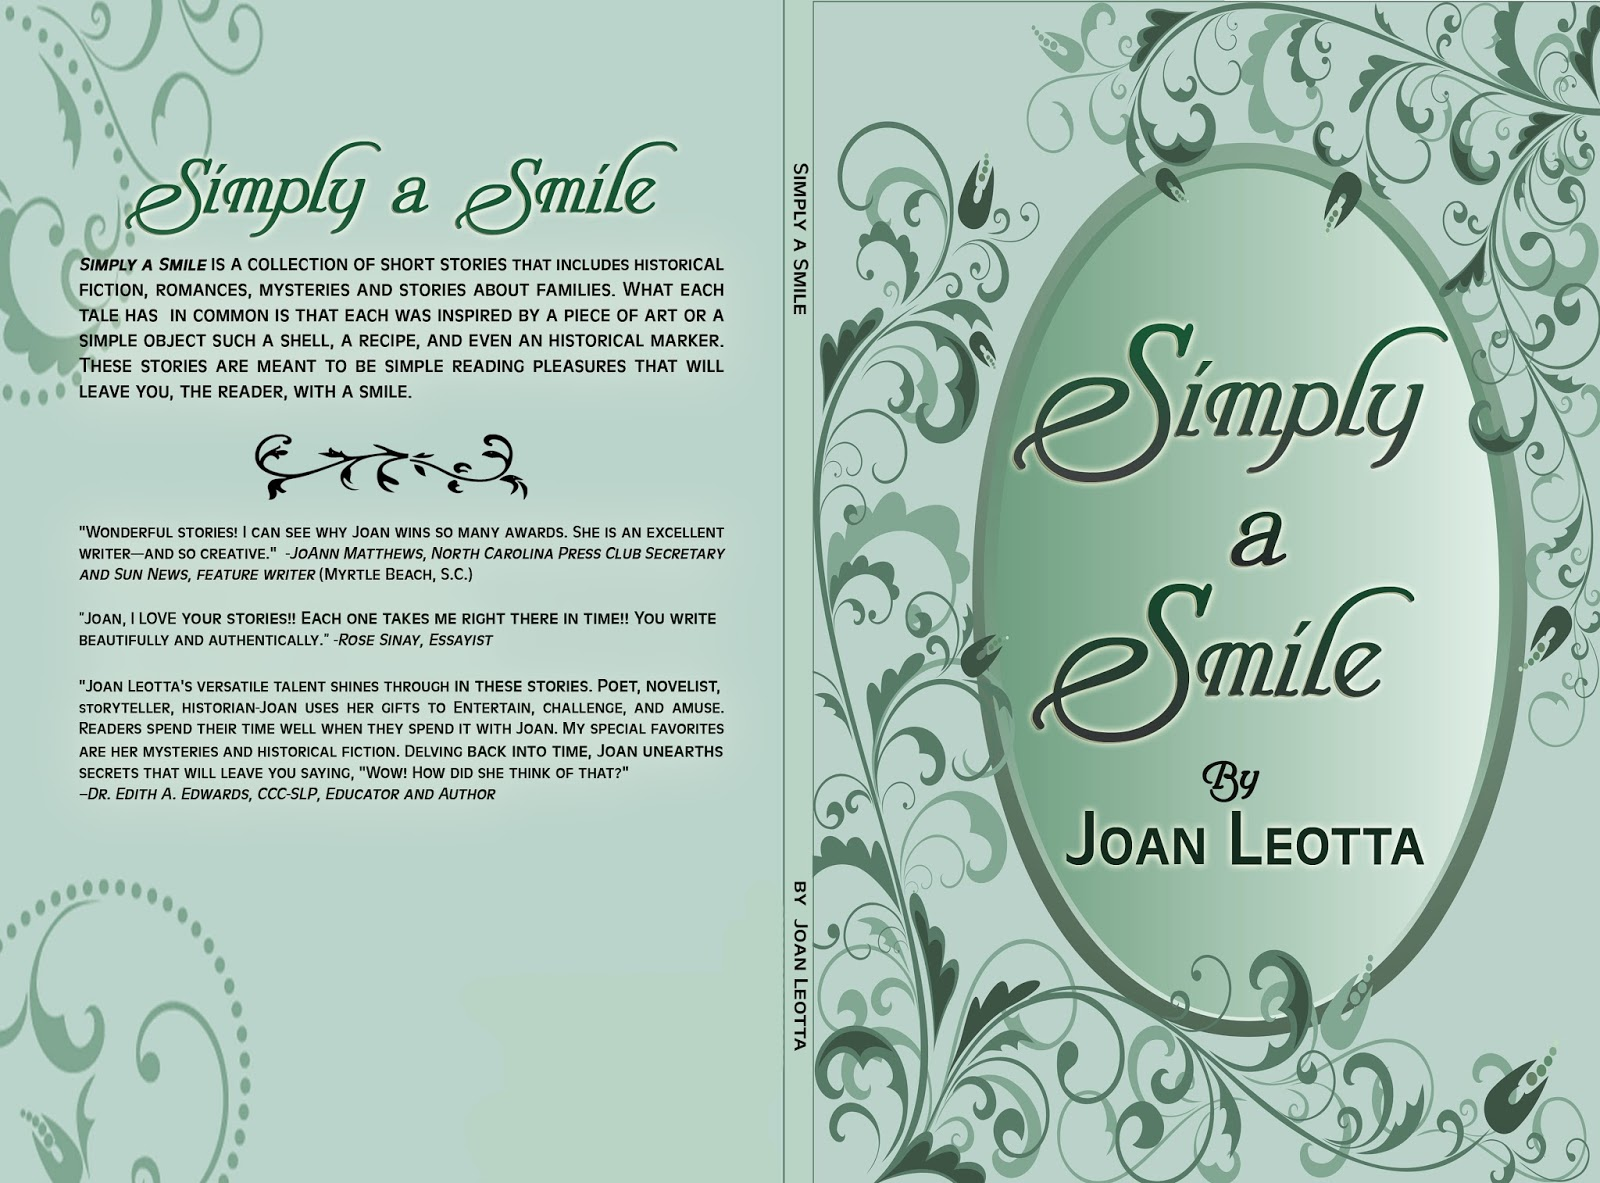 lyrical pens  simply a smile includes a collection of short stories which contain historical fiction r ce mystery and tales of family each was inspired by a piece